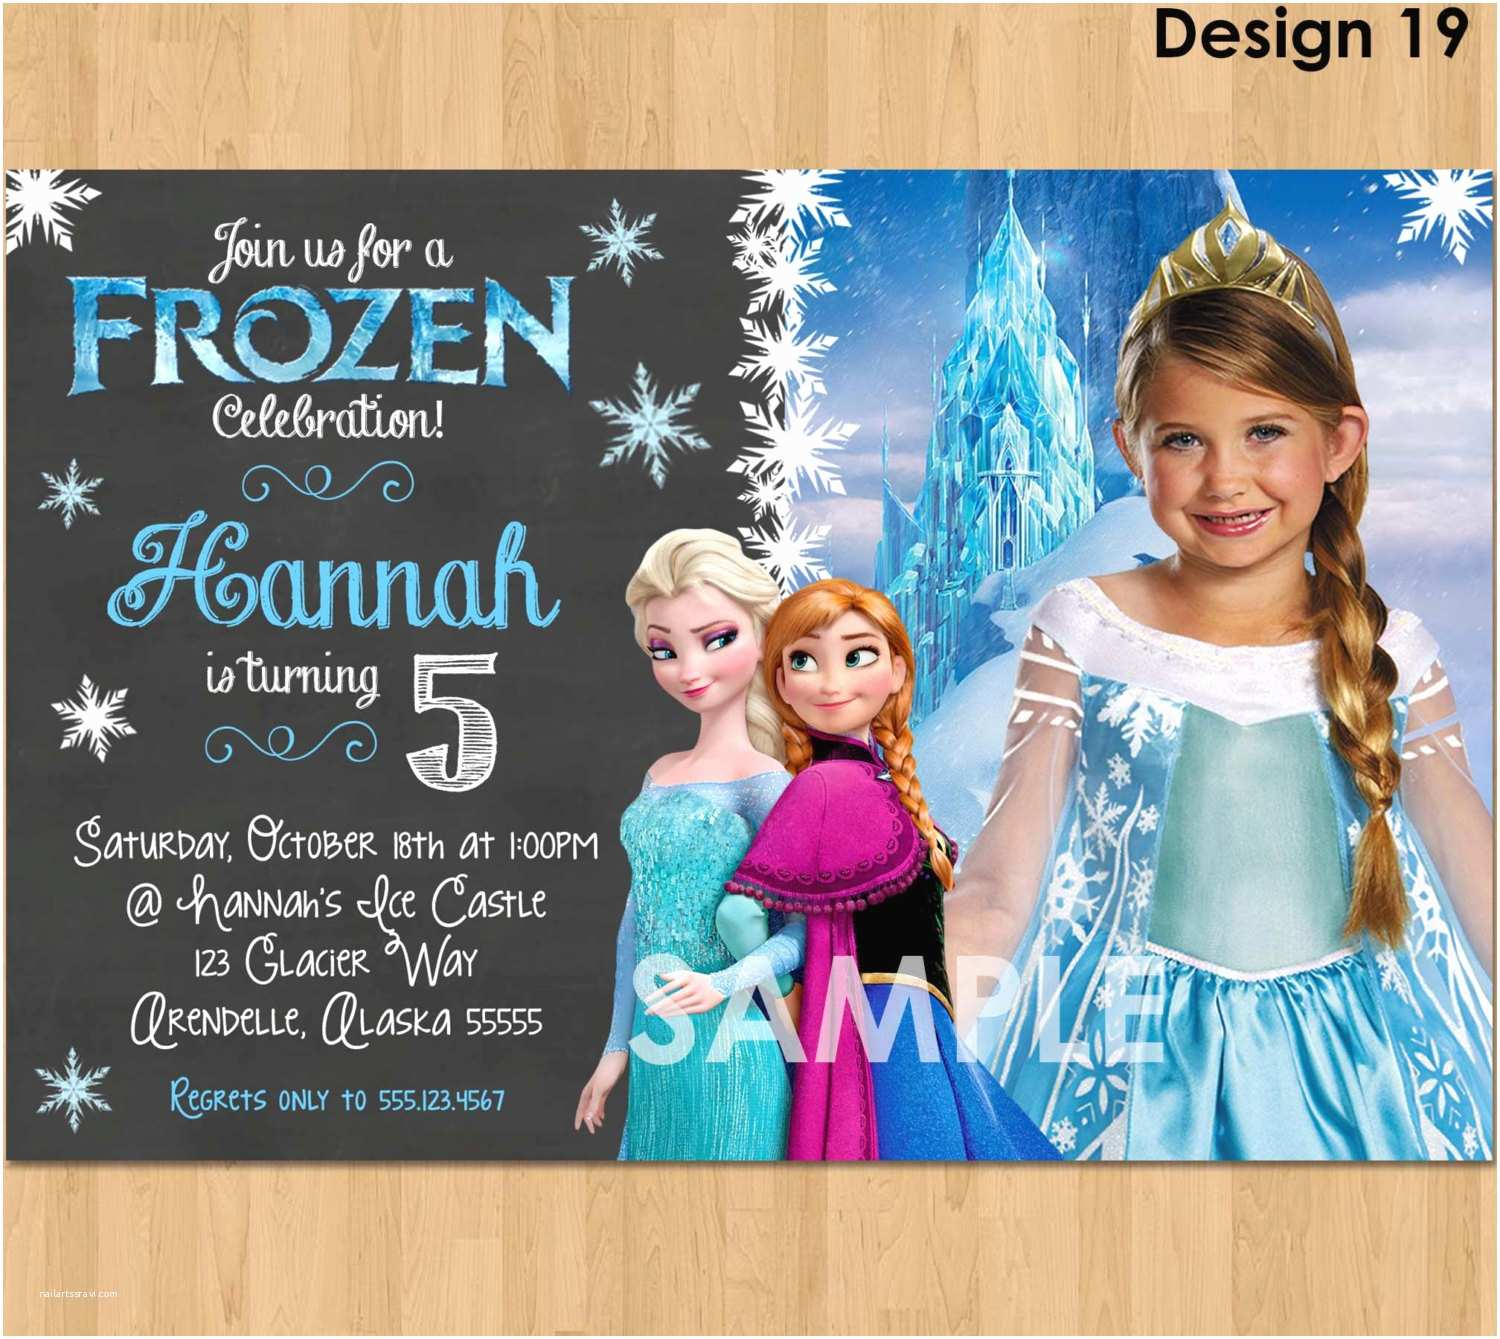 Personalized Party Invitations Personalized Frozen Birthday Invitations